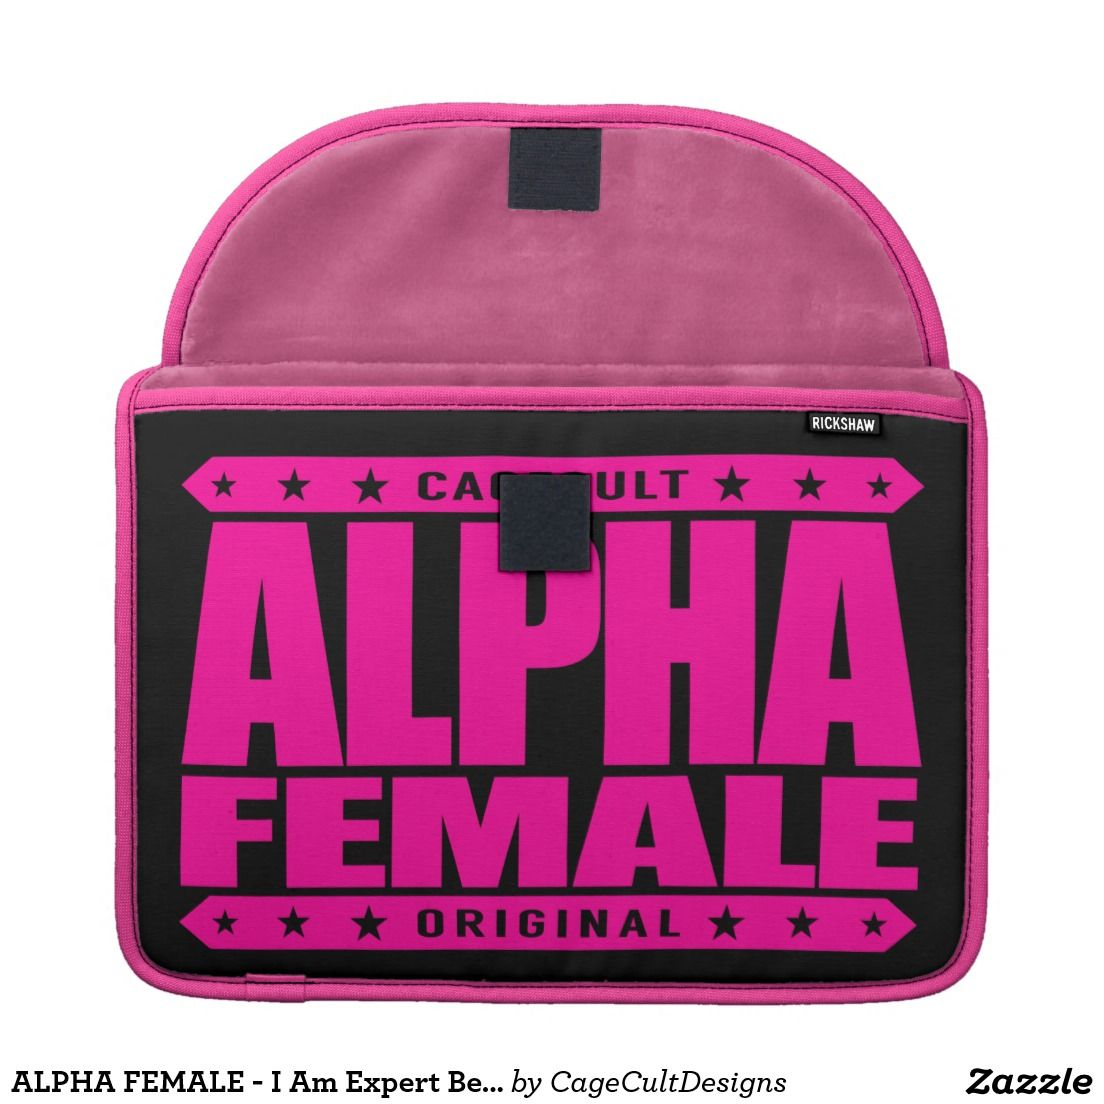 ALPHA FEMALE - I Am Expert Beta Male Tester, Pink MacBook Pro Sleeve - if you love #MMA - #UFC - #MixedMartialArts, you will love my latest CageCult design: http://www.zazzle.com/alpha_female_i_am_expert_beta_male_tester_pink_macbook_sleeve-204045030072623407?CMPN=shareicon&lang=en&rf=238007256032371611